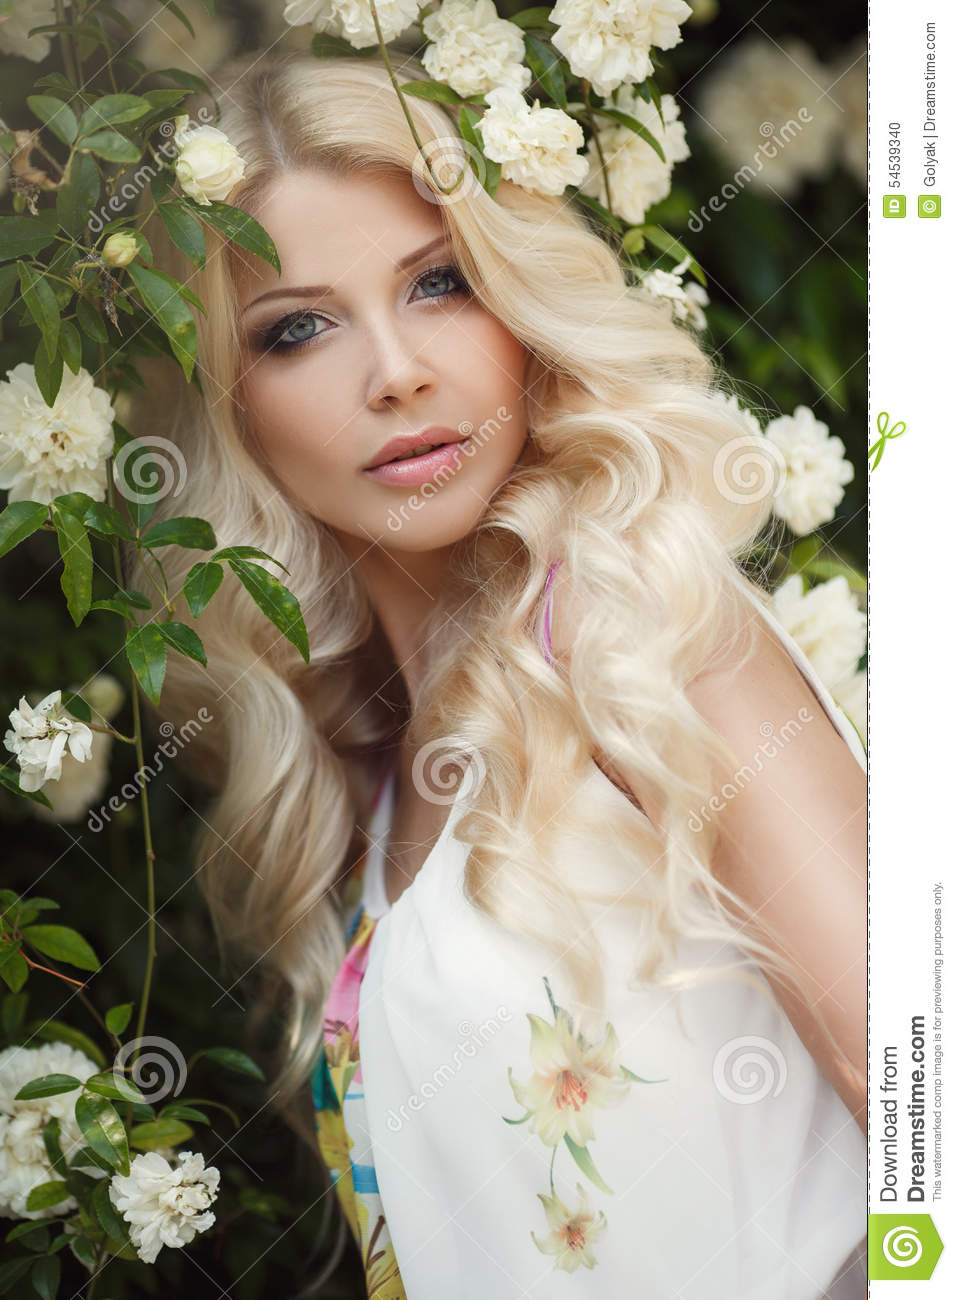 Tumblr blonde bush